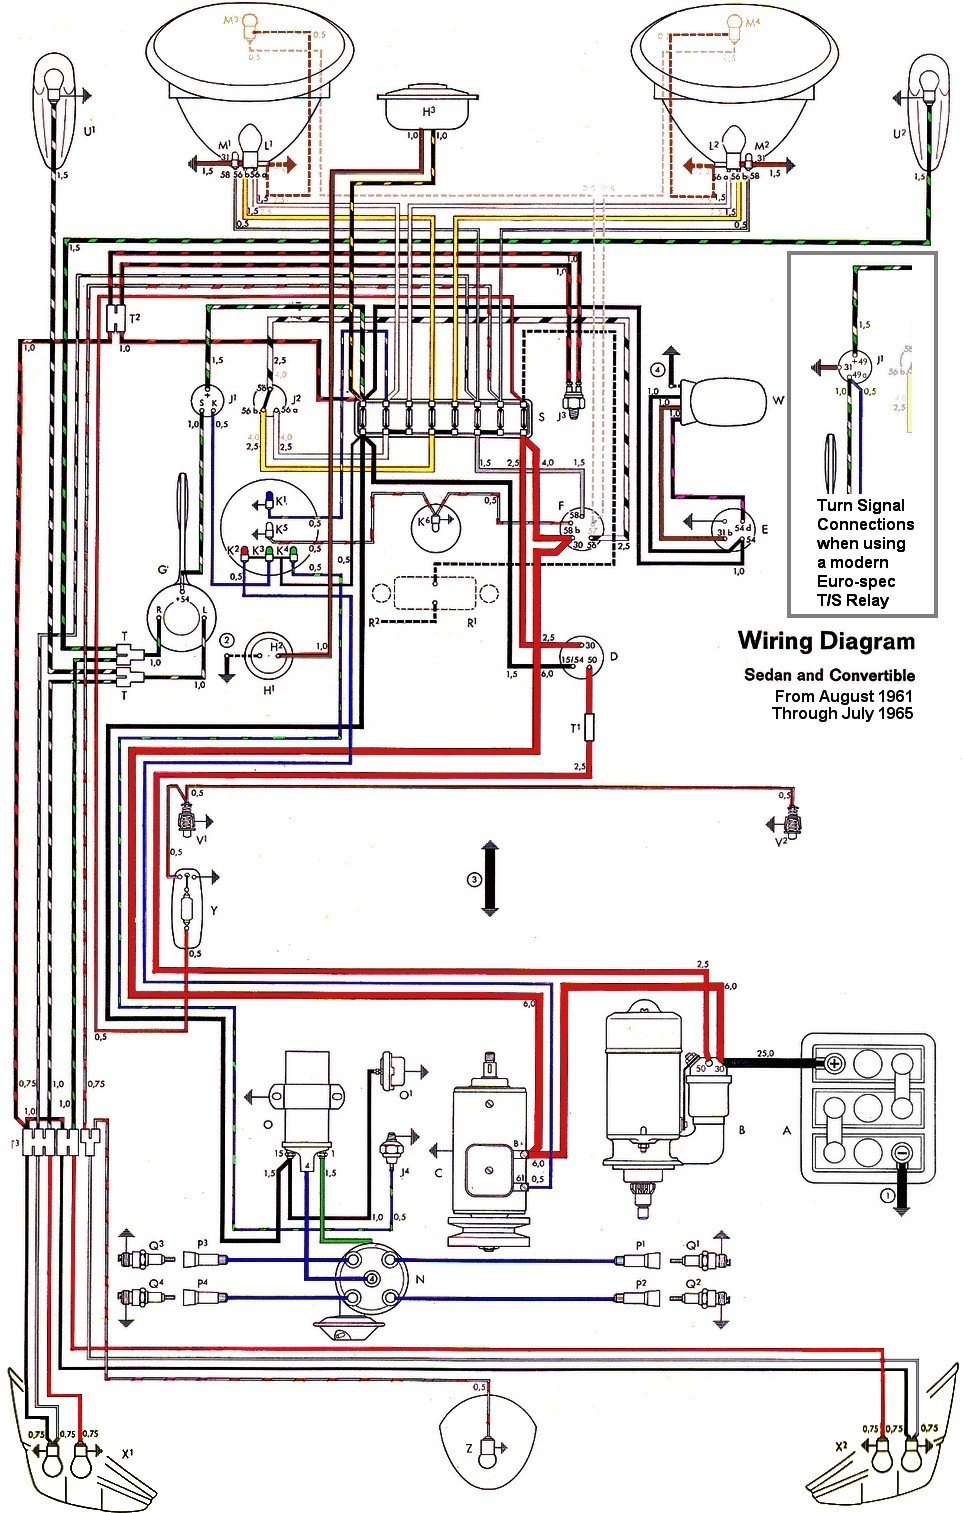 1973 Vw Bug Wiring Diagram - seniorsclub.it wires-white - wires -white.seniorsclub.itdiagram database